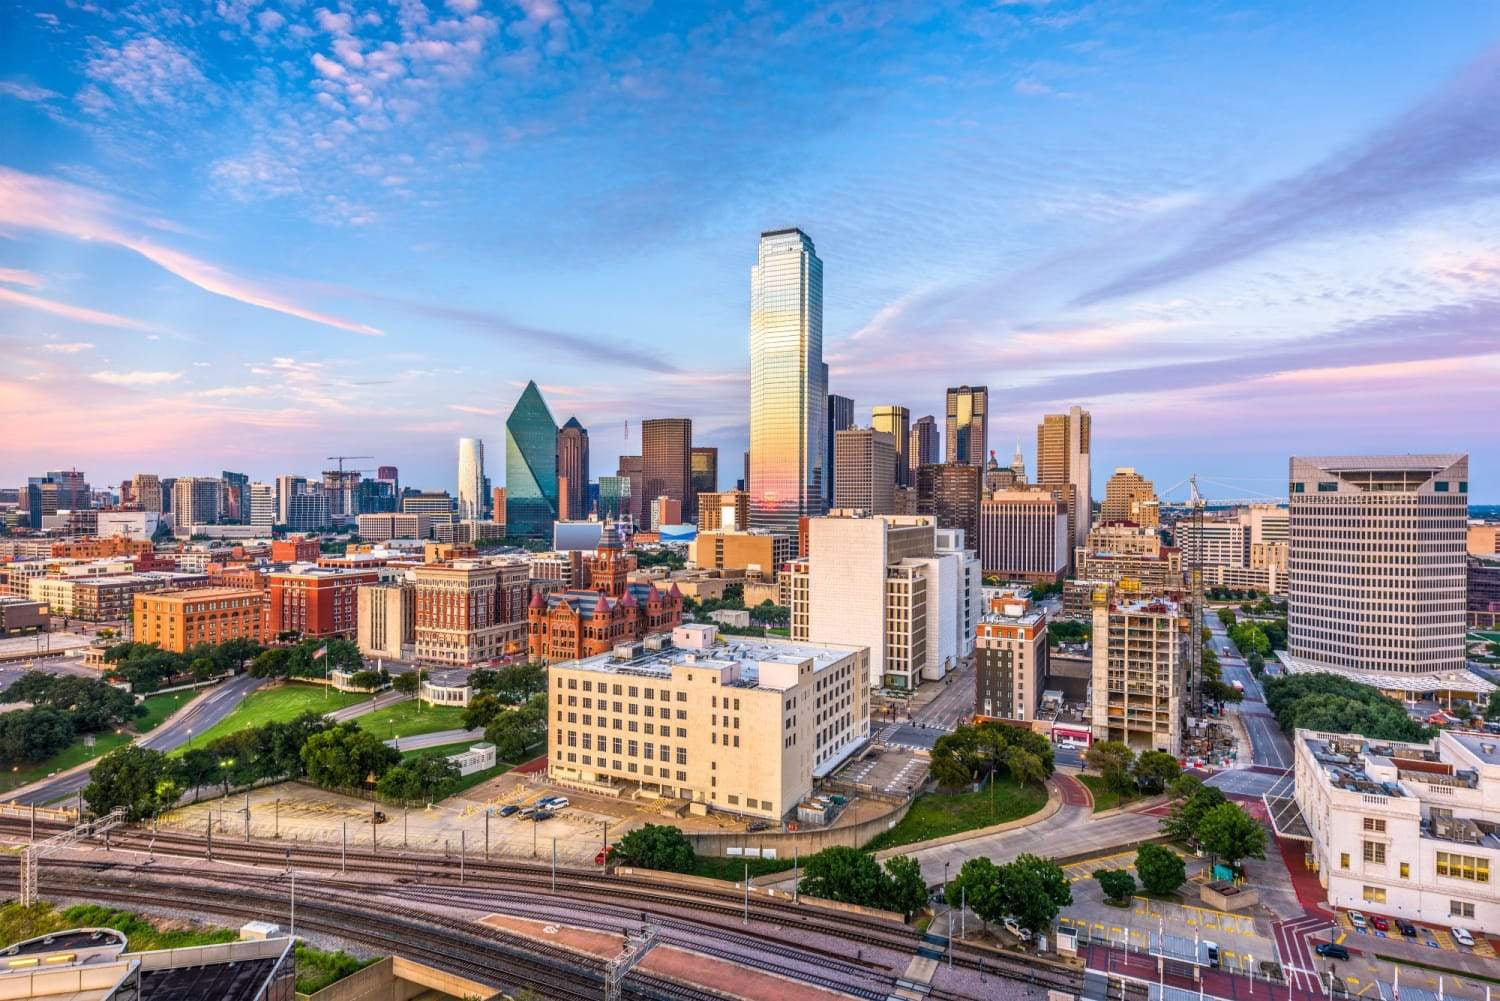 How Quality Videos Can Help Sell Dallas Real Estate